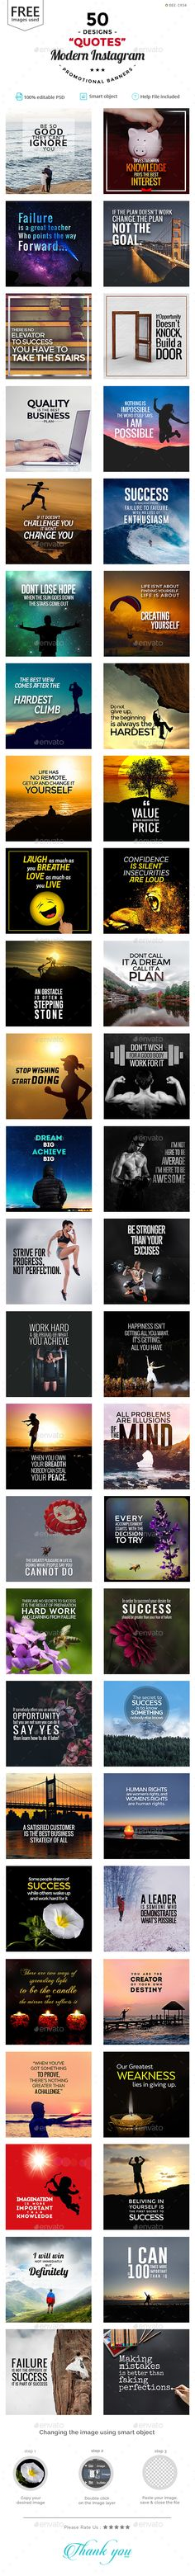 Quotes Instagram Banners Templates - 50 Designs